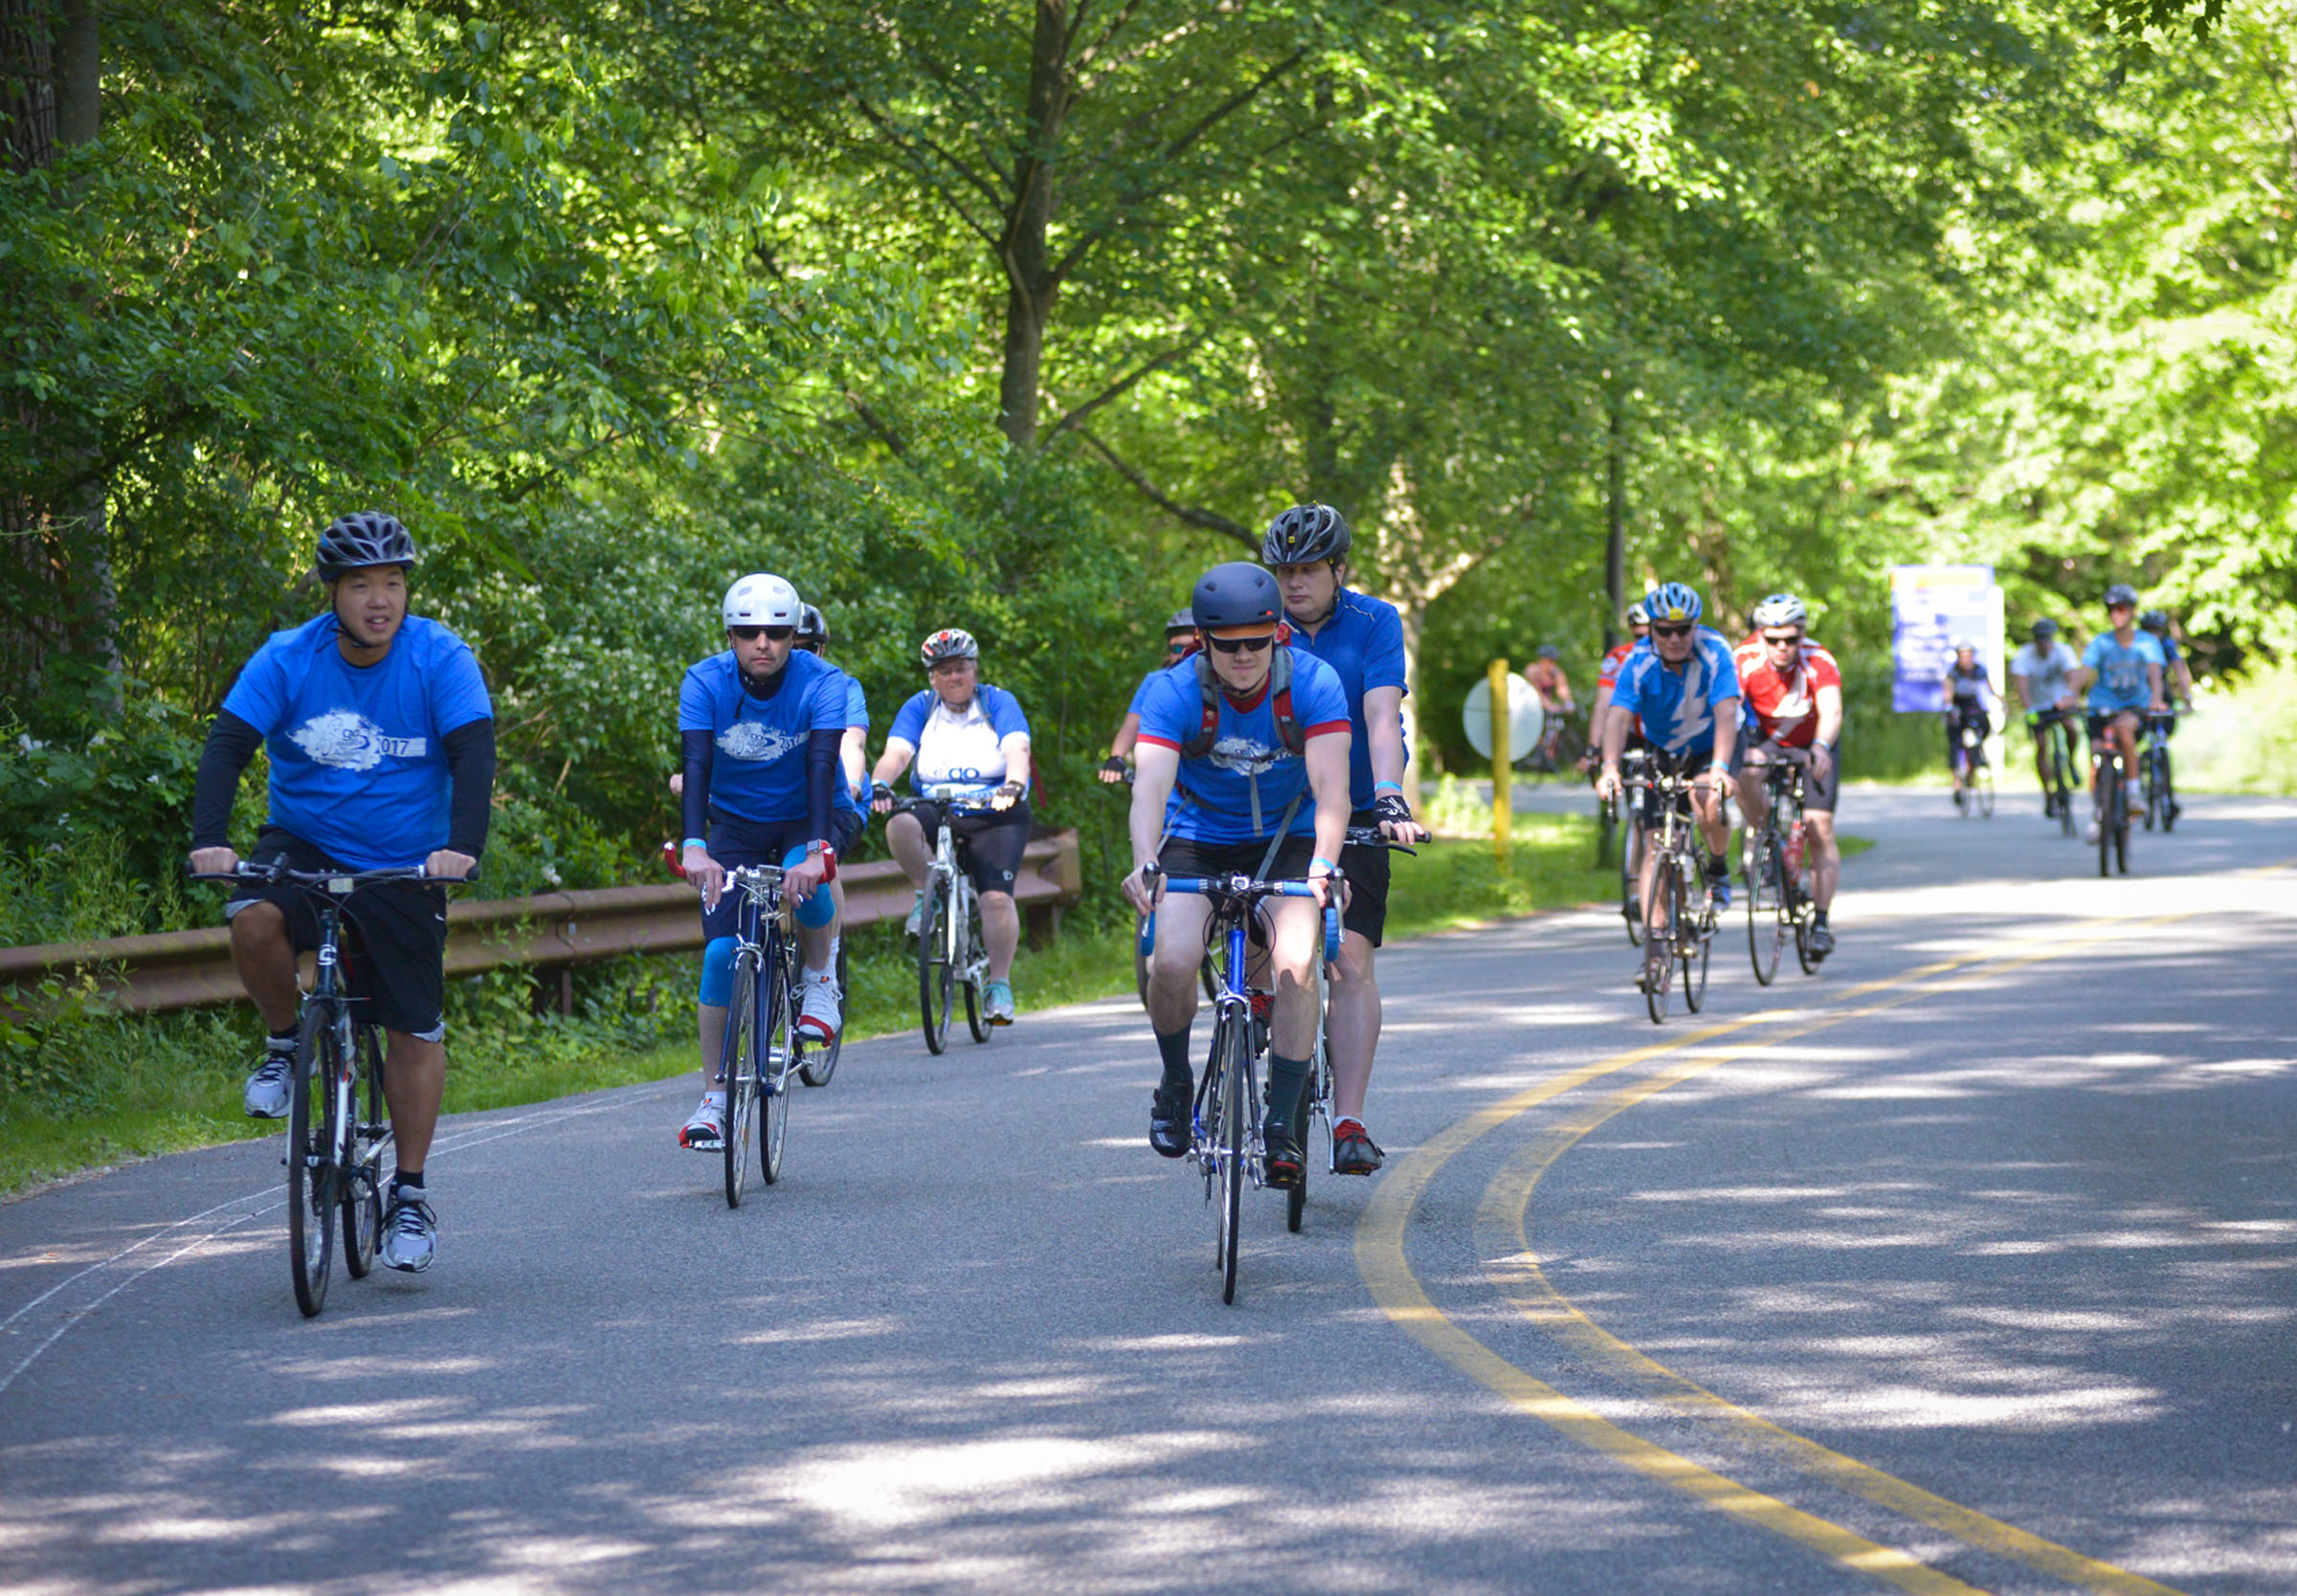 2017-06-04 GTD4A Charity Bike Ride - BCC - Paramus NJ-1893.jpg